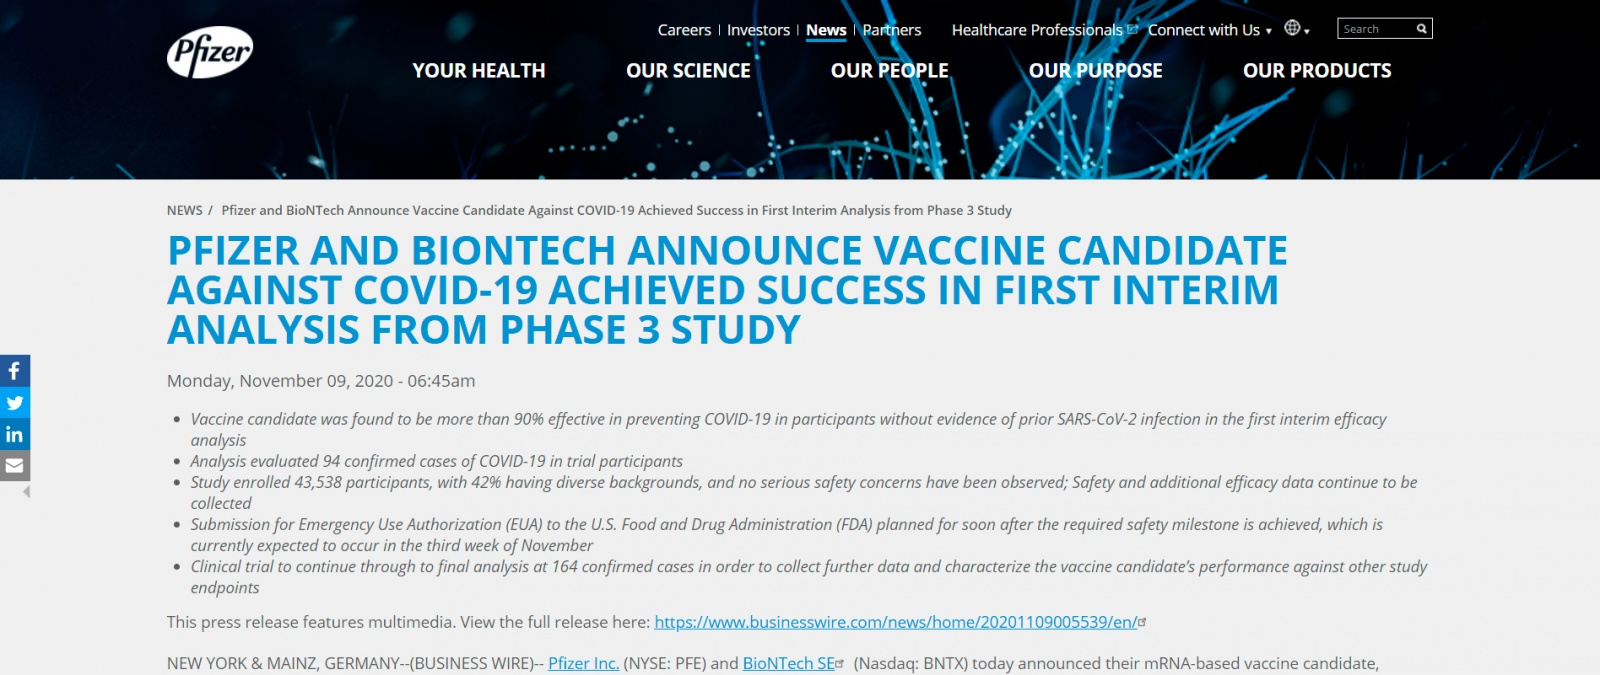 Источник: https://www.pfizer.com/news/press-release/press-release-detail/pfizer-and-biontech-announce-vaccine-candidate-against